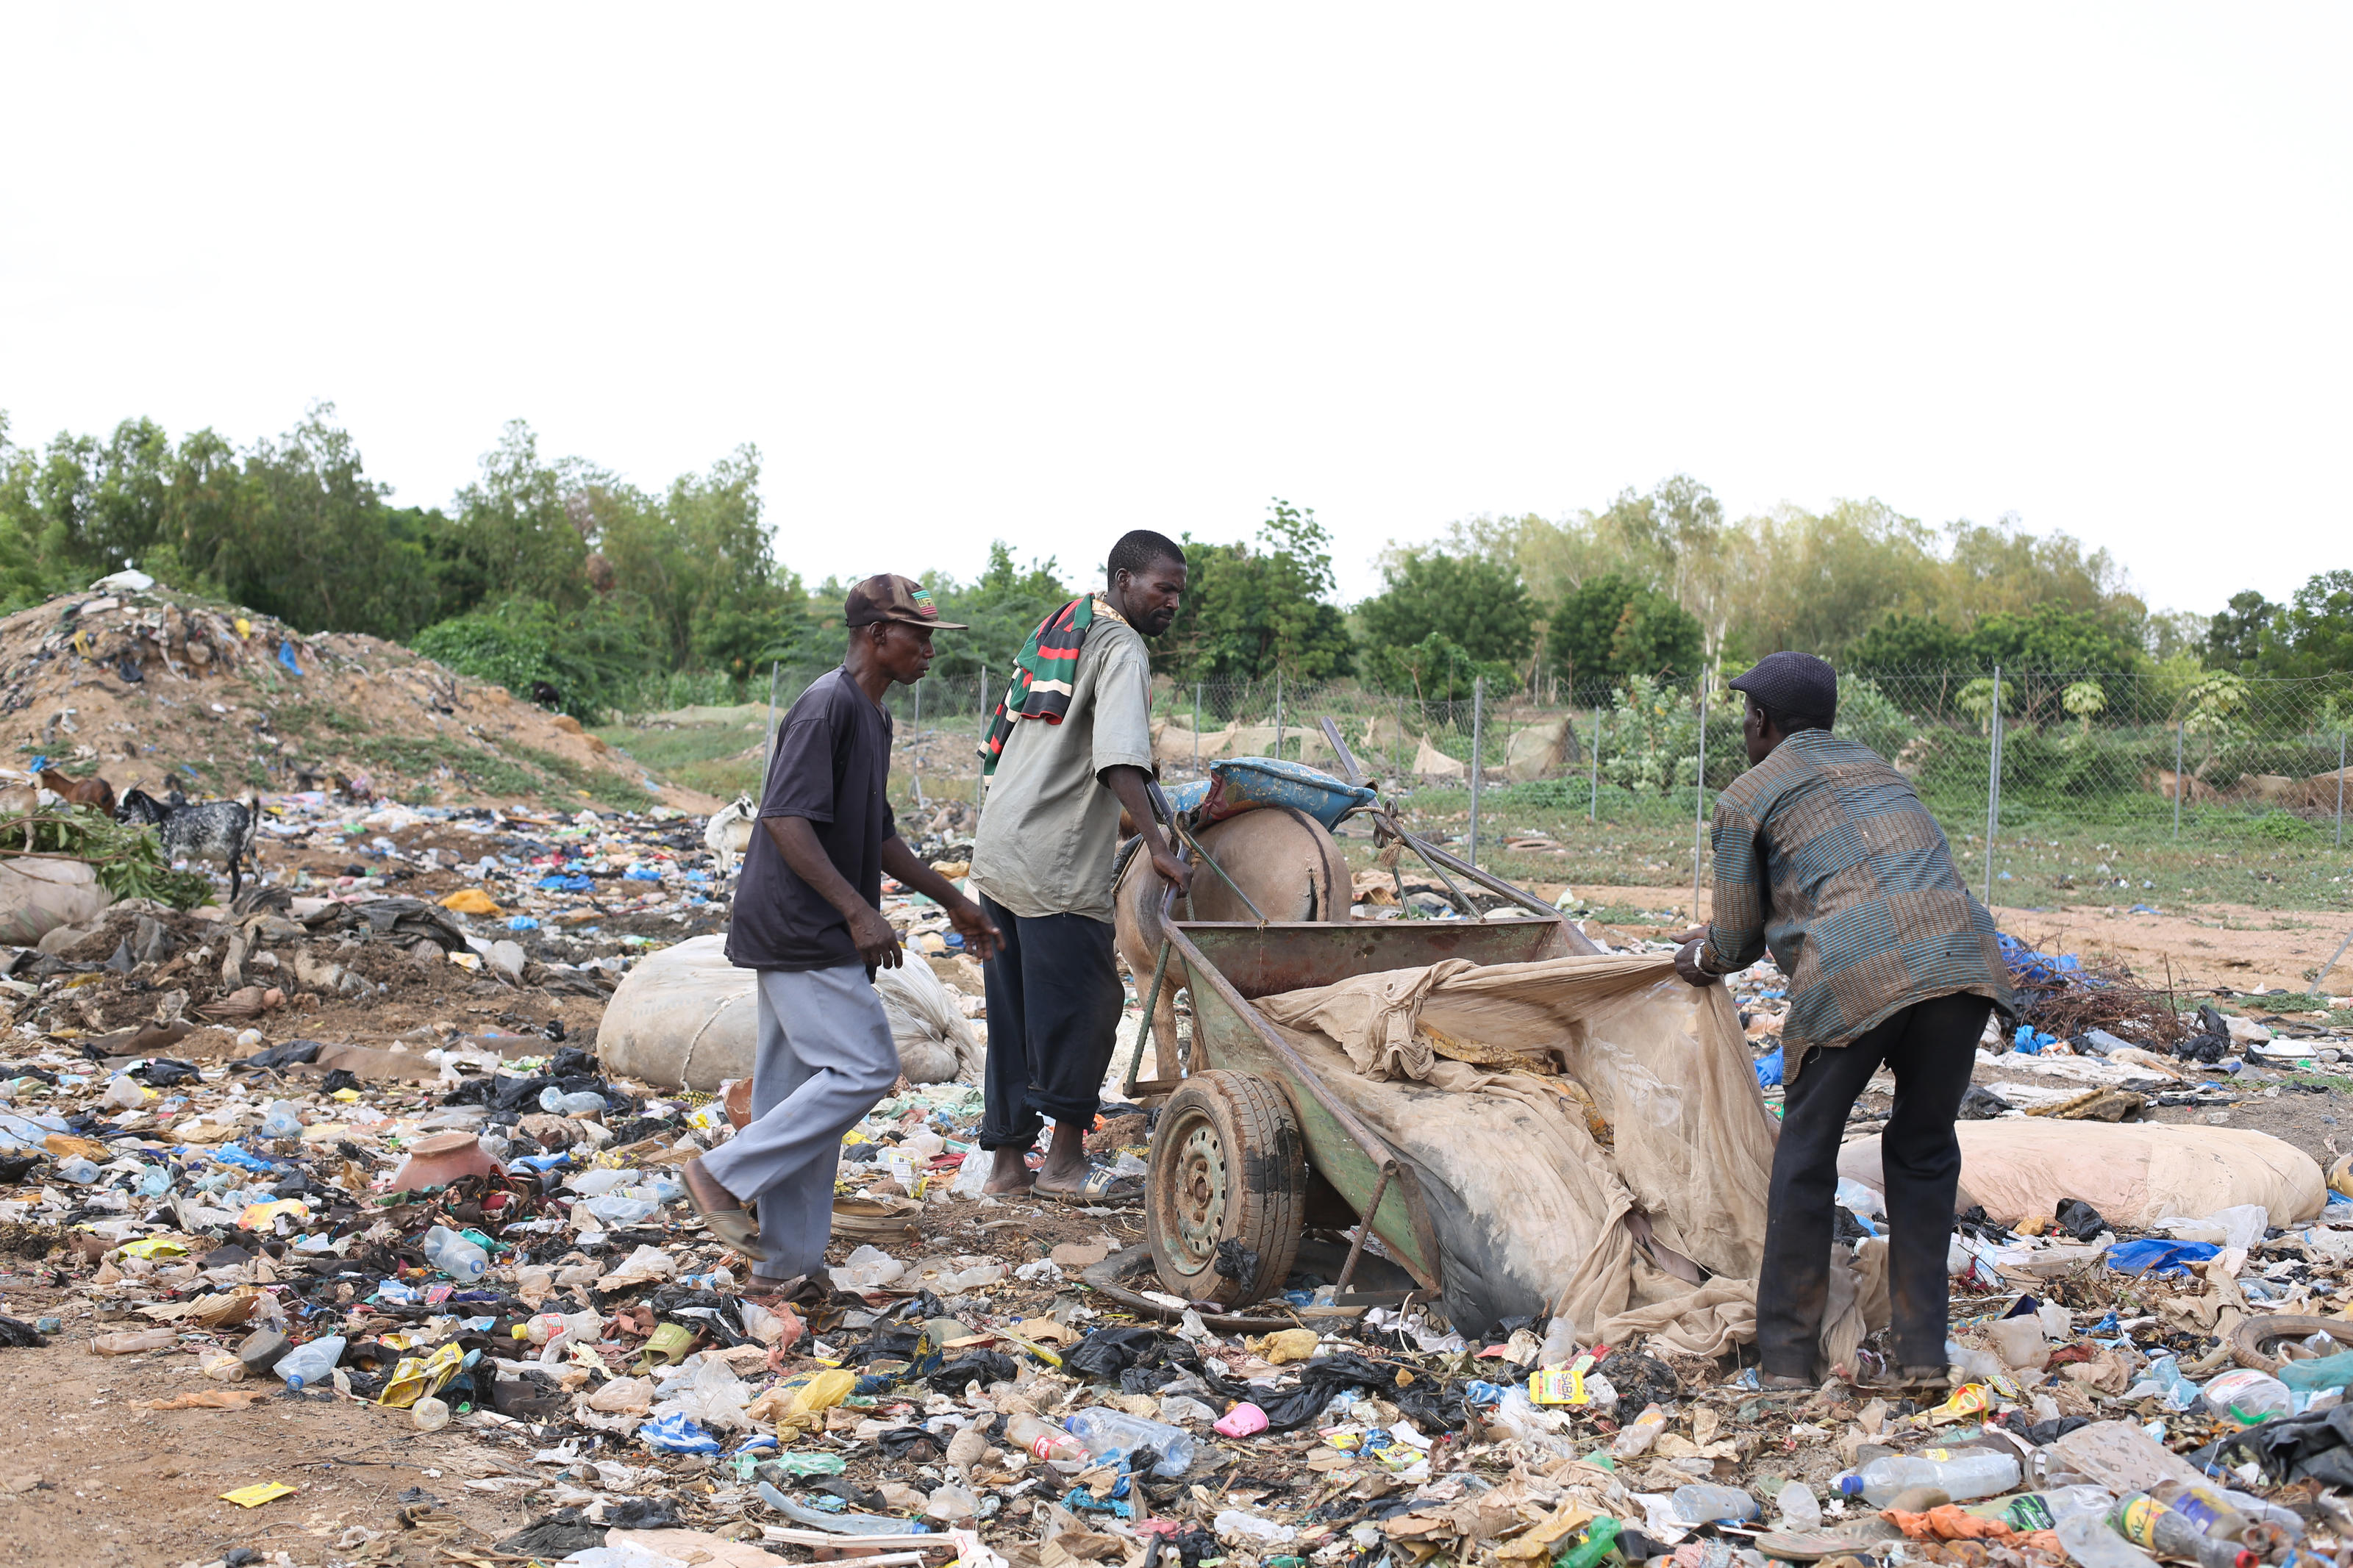 A team of sanitation workers empty their waste into a makeshift dumping ground